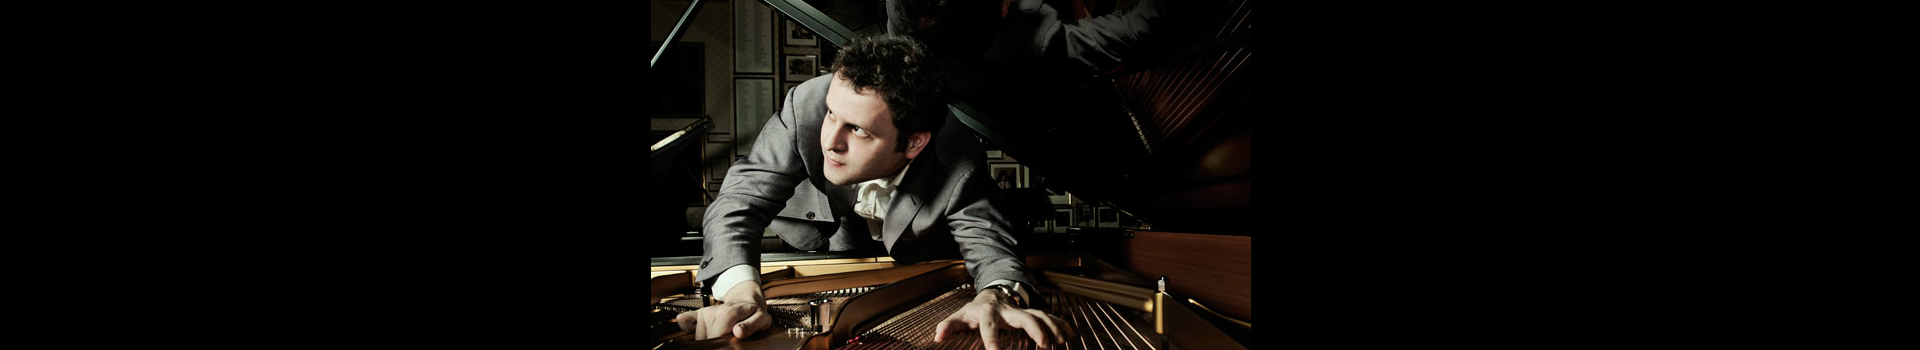 The Remains of Tom Lehrer (Performed by Adam Kay) banner image